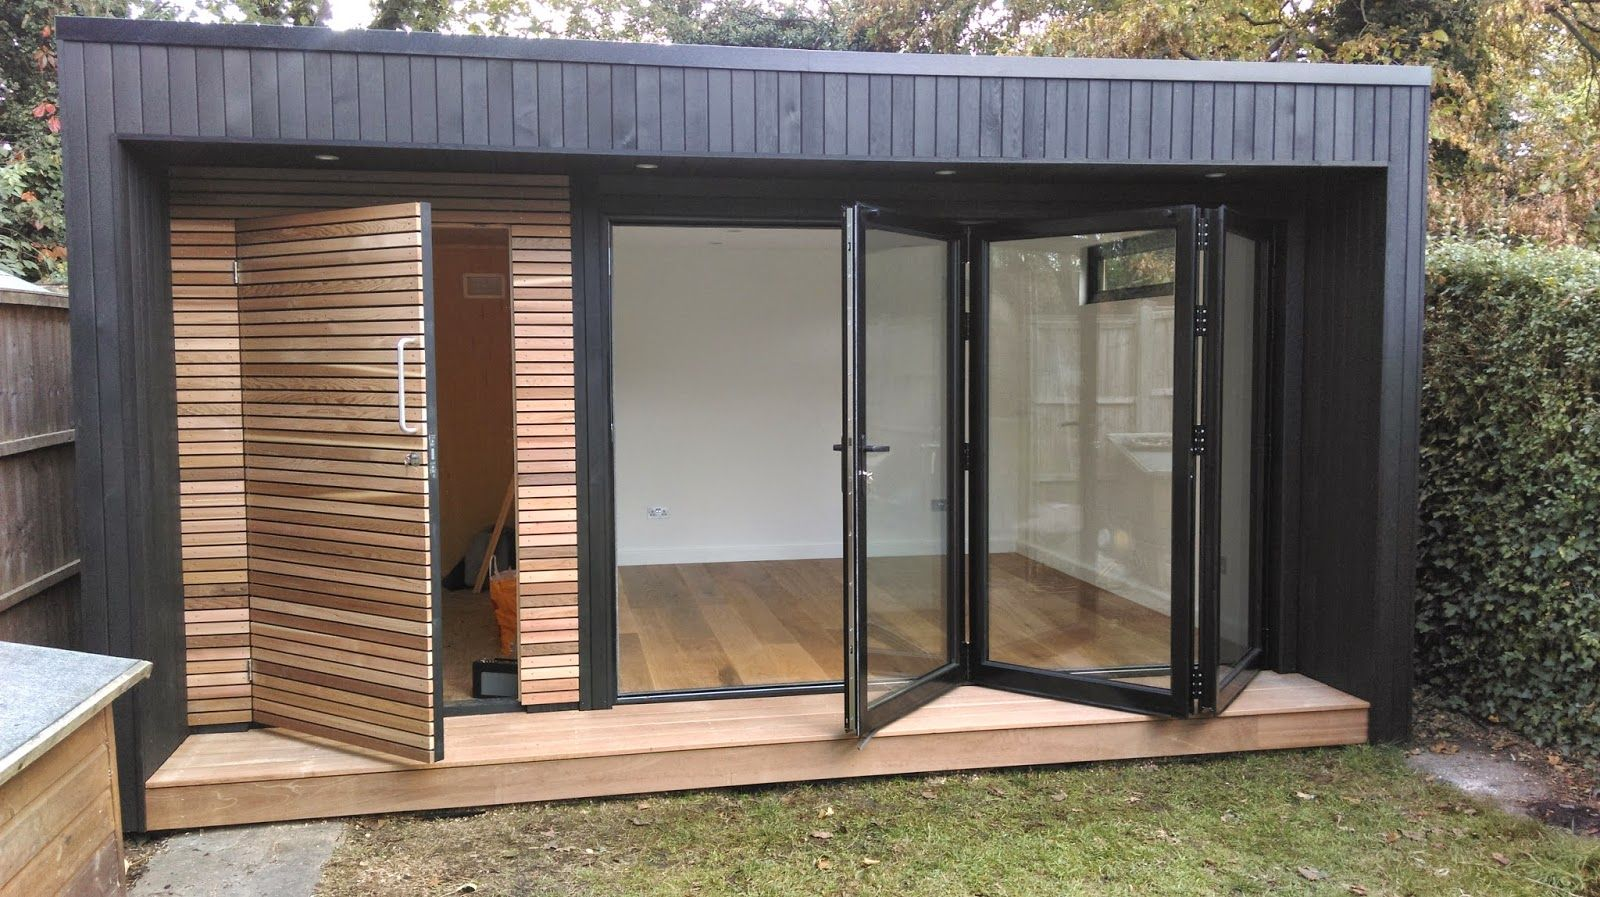 Best 25 contemporary garden rooms ideas on pinterest contemporary sheds contemporary gardens - Small garden space ideas property ...